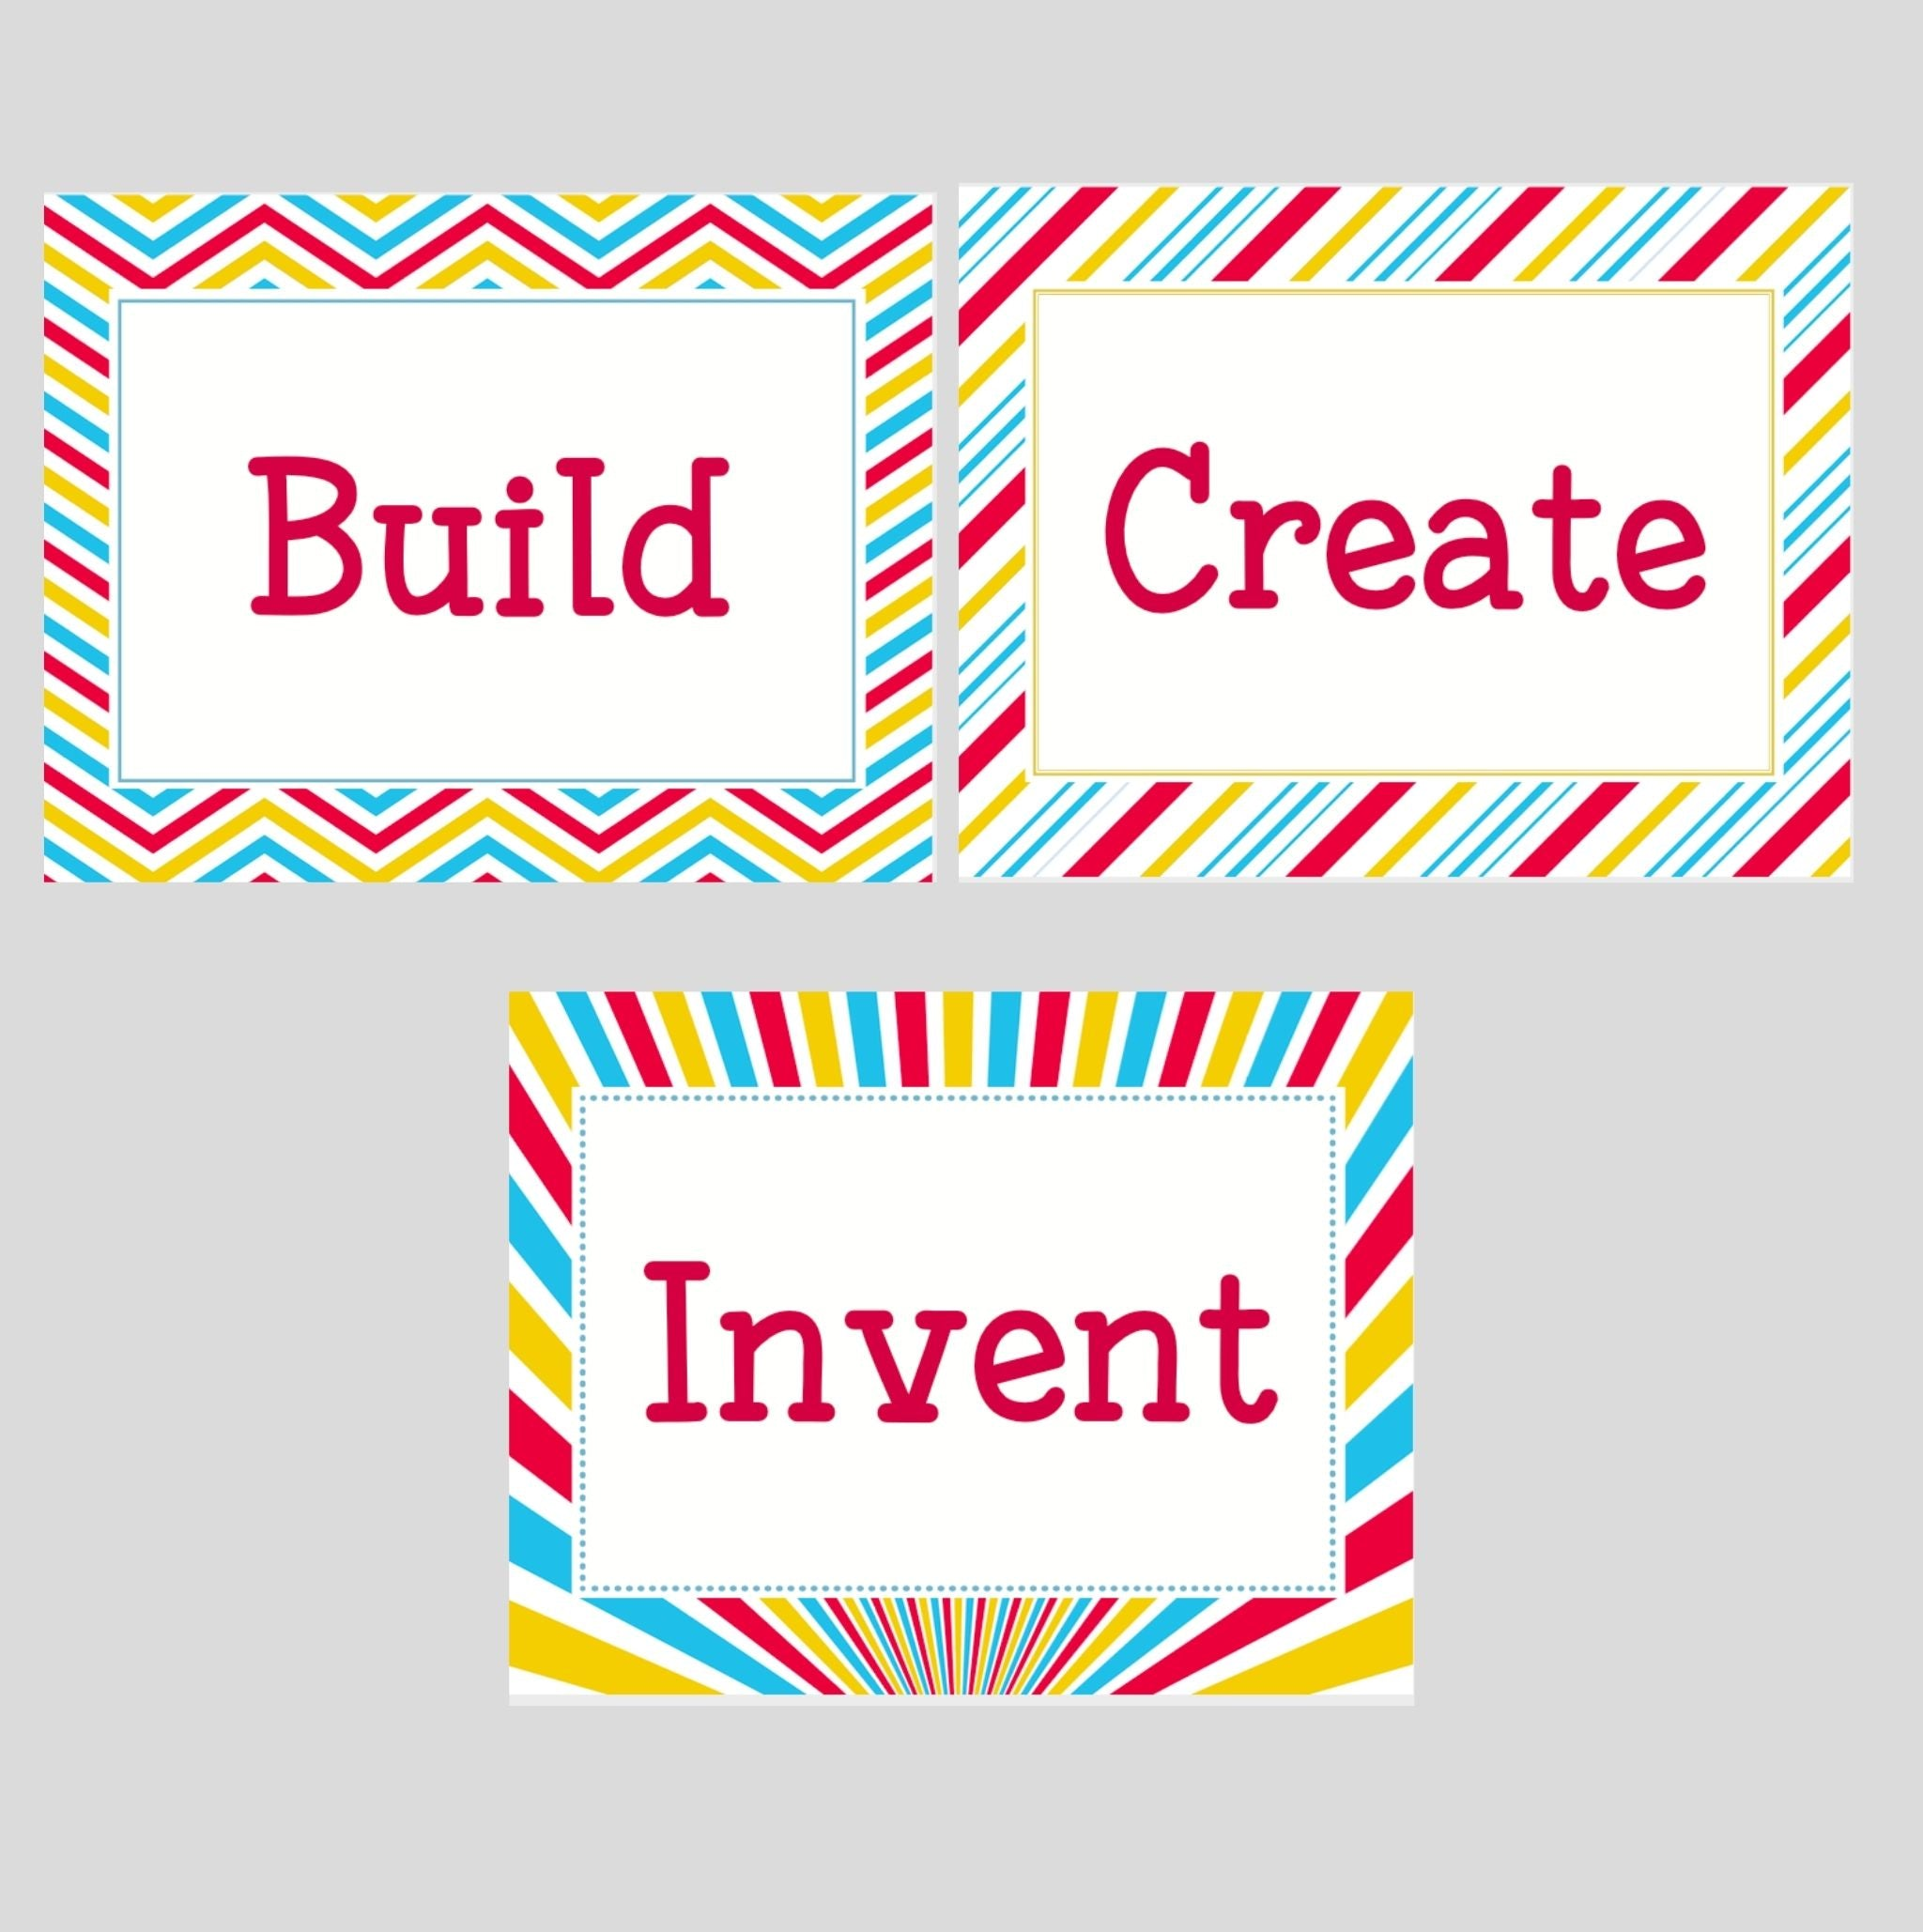 Playroom Signs: Build, Invent, Create